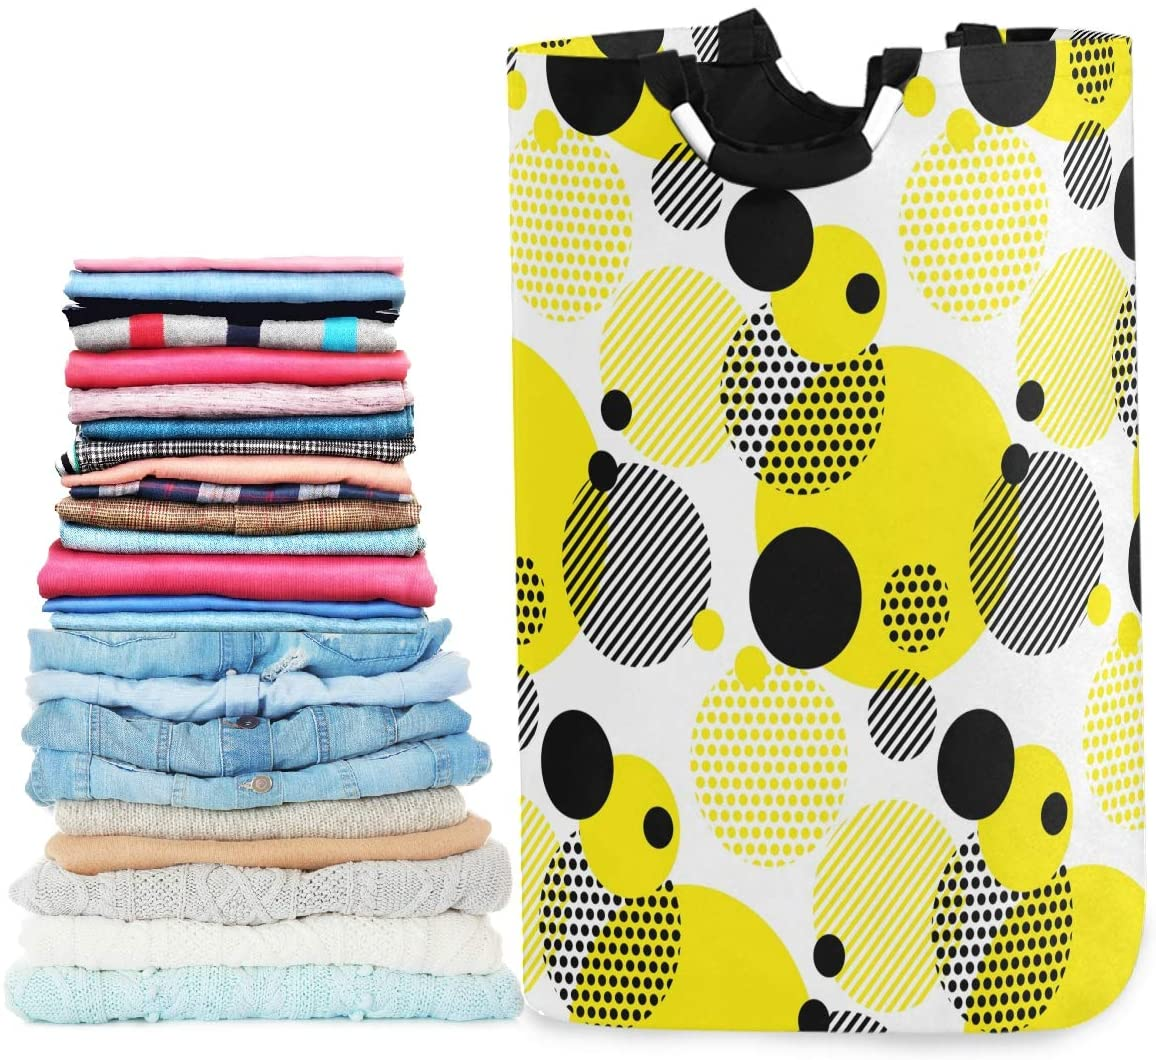 visesunny Collapsible Laundry Basket Black Yellow Round Stripe Large Laundry Hamper Oxford Fabric Dirty Clothes Toy Organizer with Handle for Bathroom Kids Room Dorm